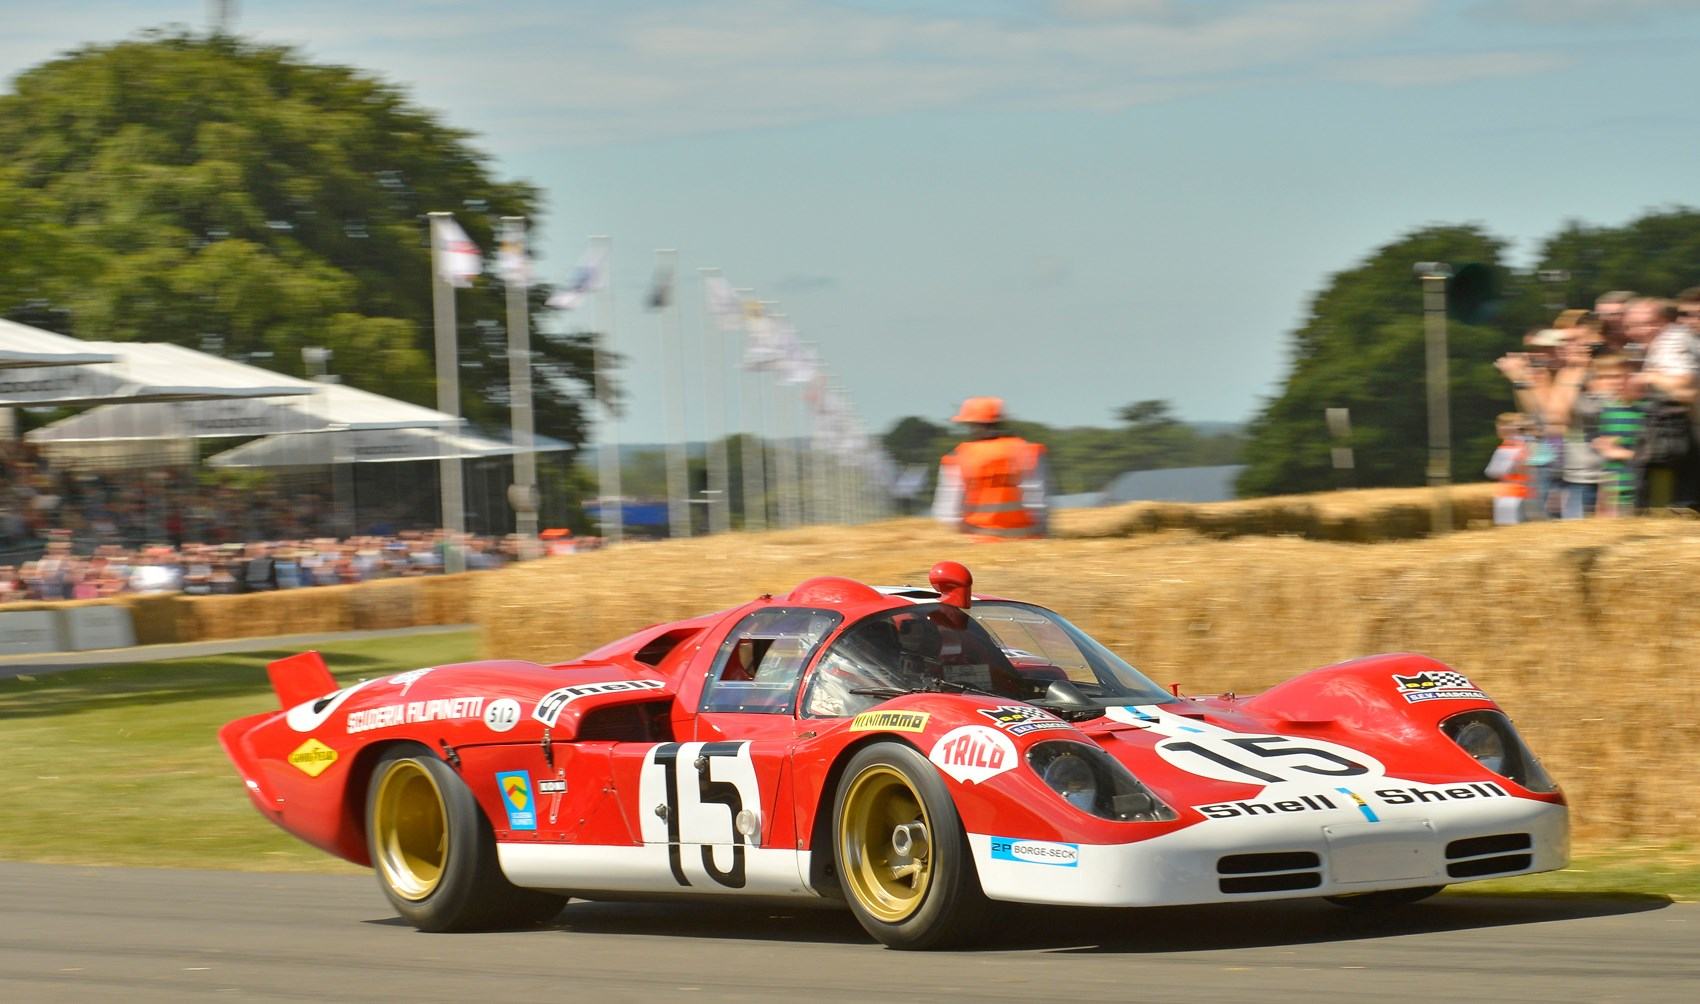 The most fearsome Le Mans cars of all time head to Goodwood in ...